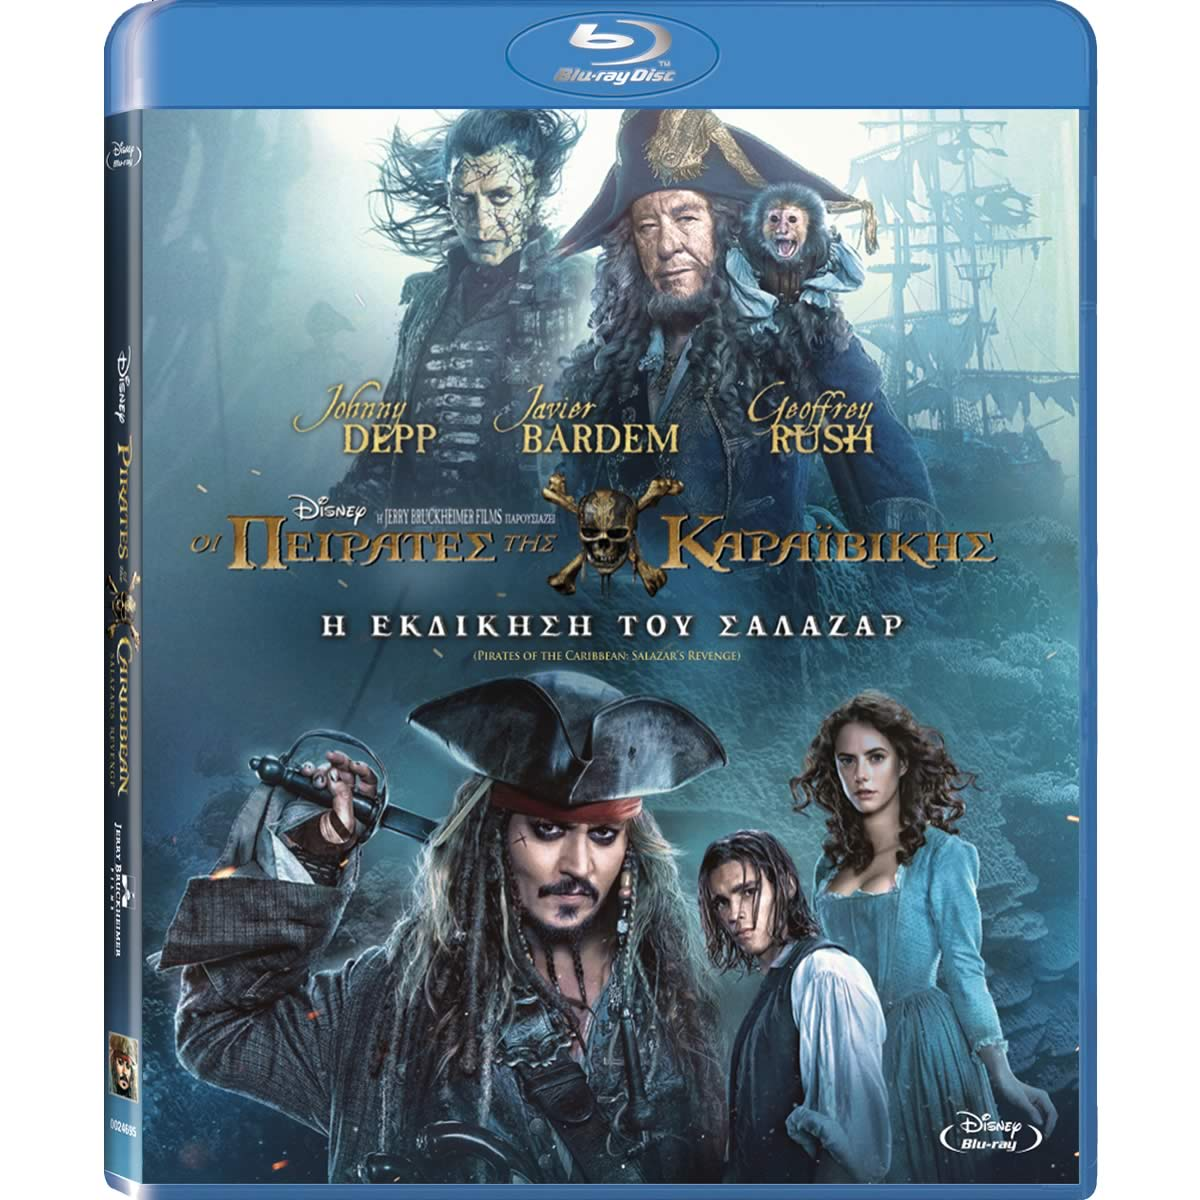 PIRATES OF THE CARIBBEAN: SALAZAR'S REVENGE - PIRATES OF THE CARIBBEAN: DEAD MEN TELL NO TALES - ΠΕΙΡΑΤΕΣ ΤΗΣ ΚΑΡΑΪΒΙΚΗΣ: Η ΕΚΔΙΚΗΣΗ ΤΟΥ ΣΑΛΑΖΑΡ (BLU-RAY)